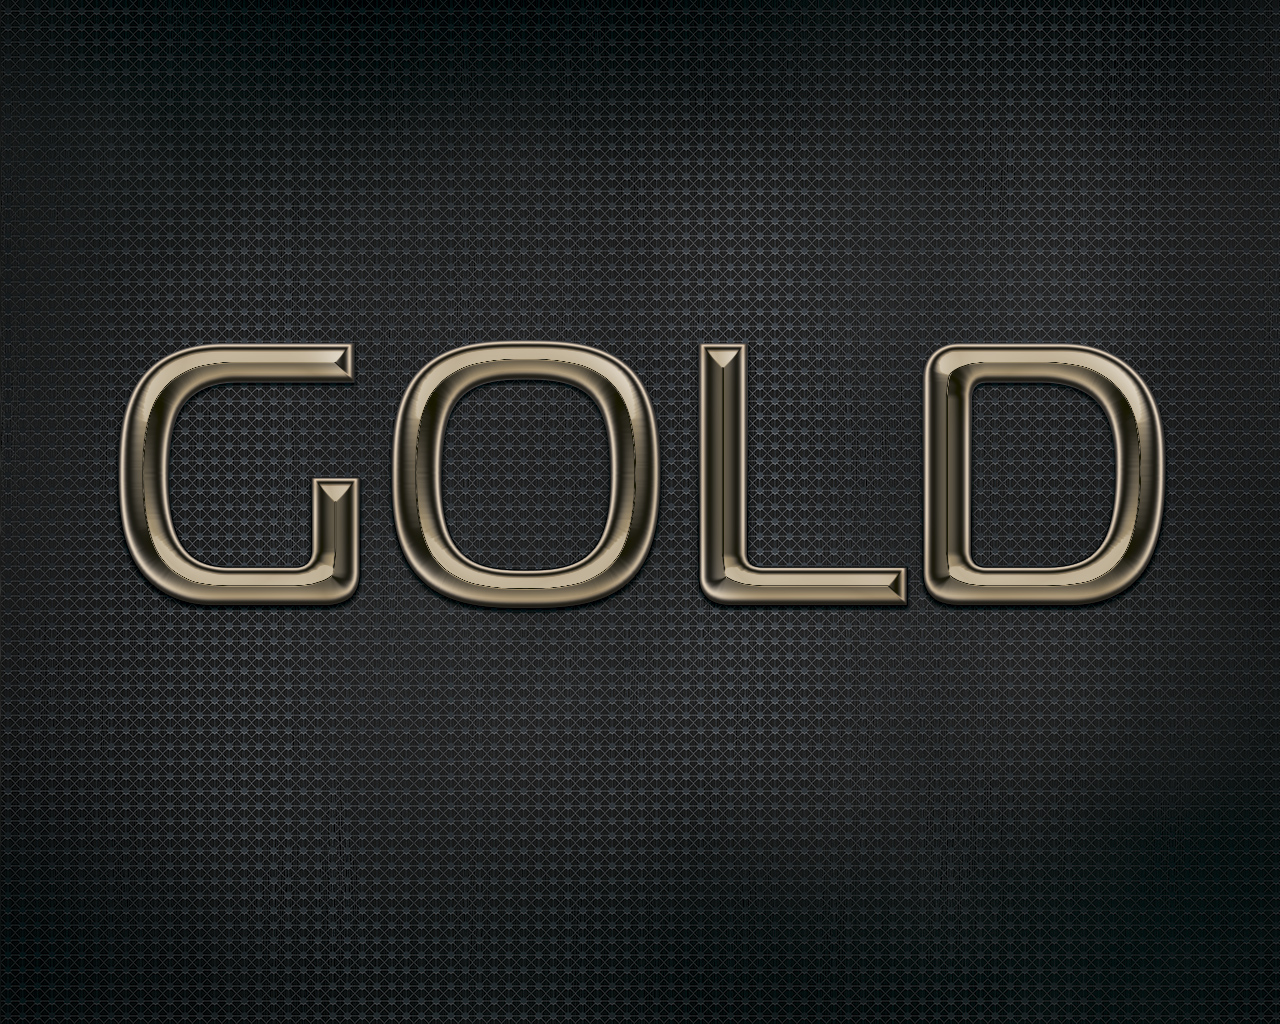 Cool text effects photoshop creative photoshop actionsgreedeals cool text effects photoshop gold text baditri Image collections